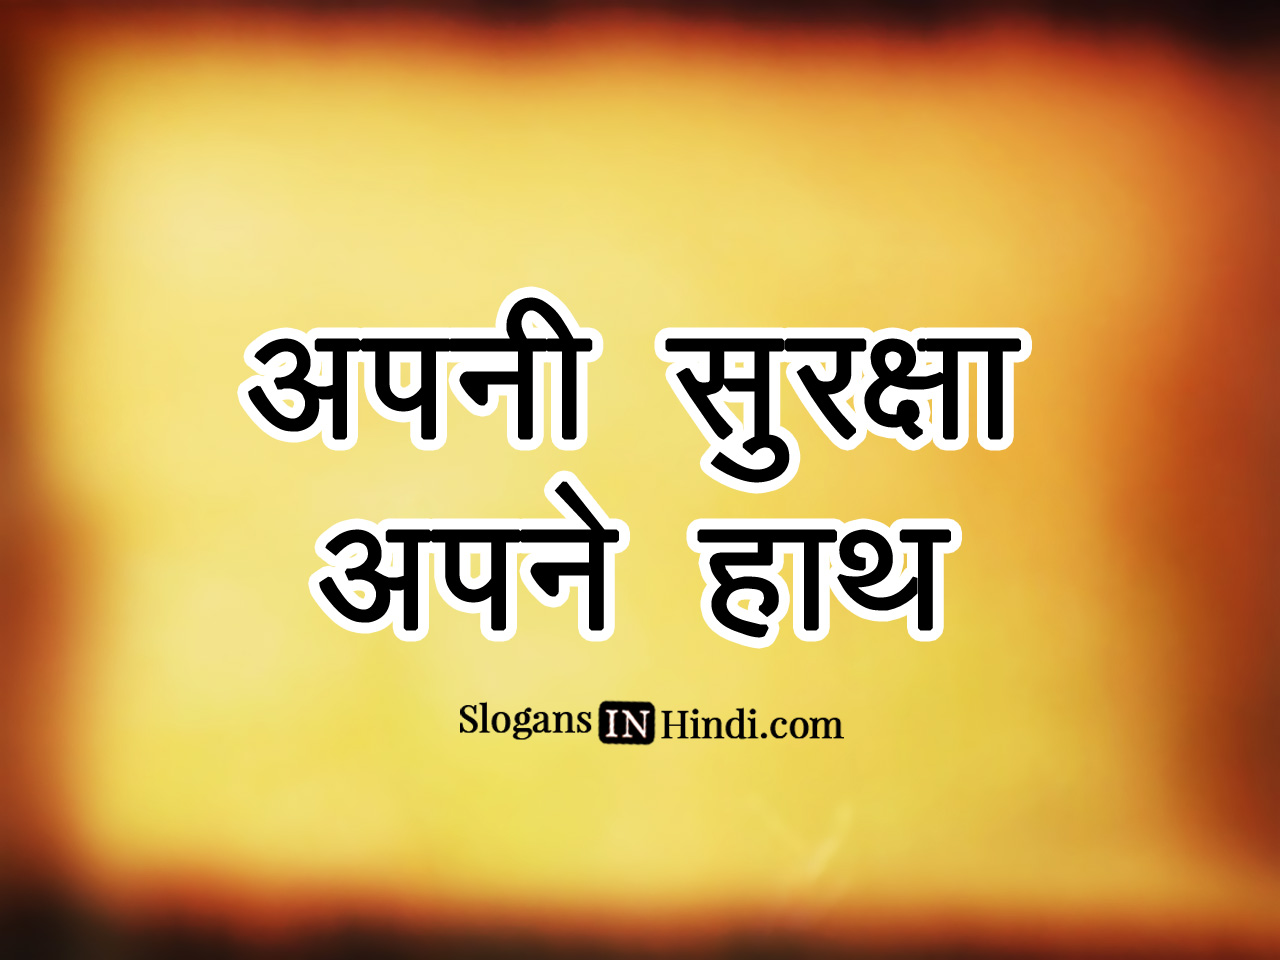 hindi slogans on biodivercity Biodiversity is key for more variety here is a list of clever biodiversity slogans and sayings.